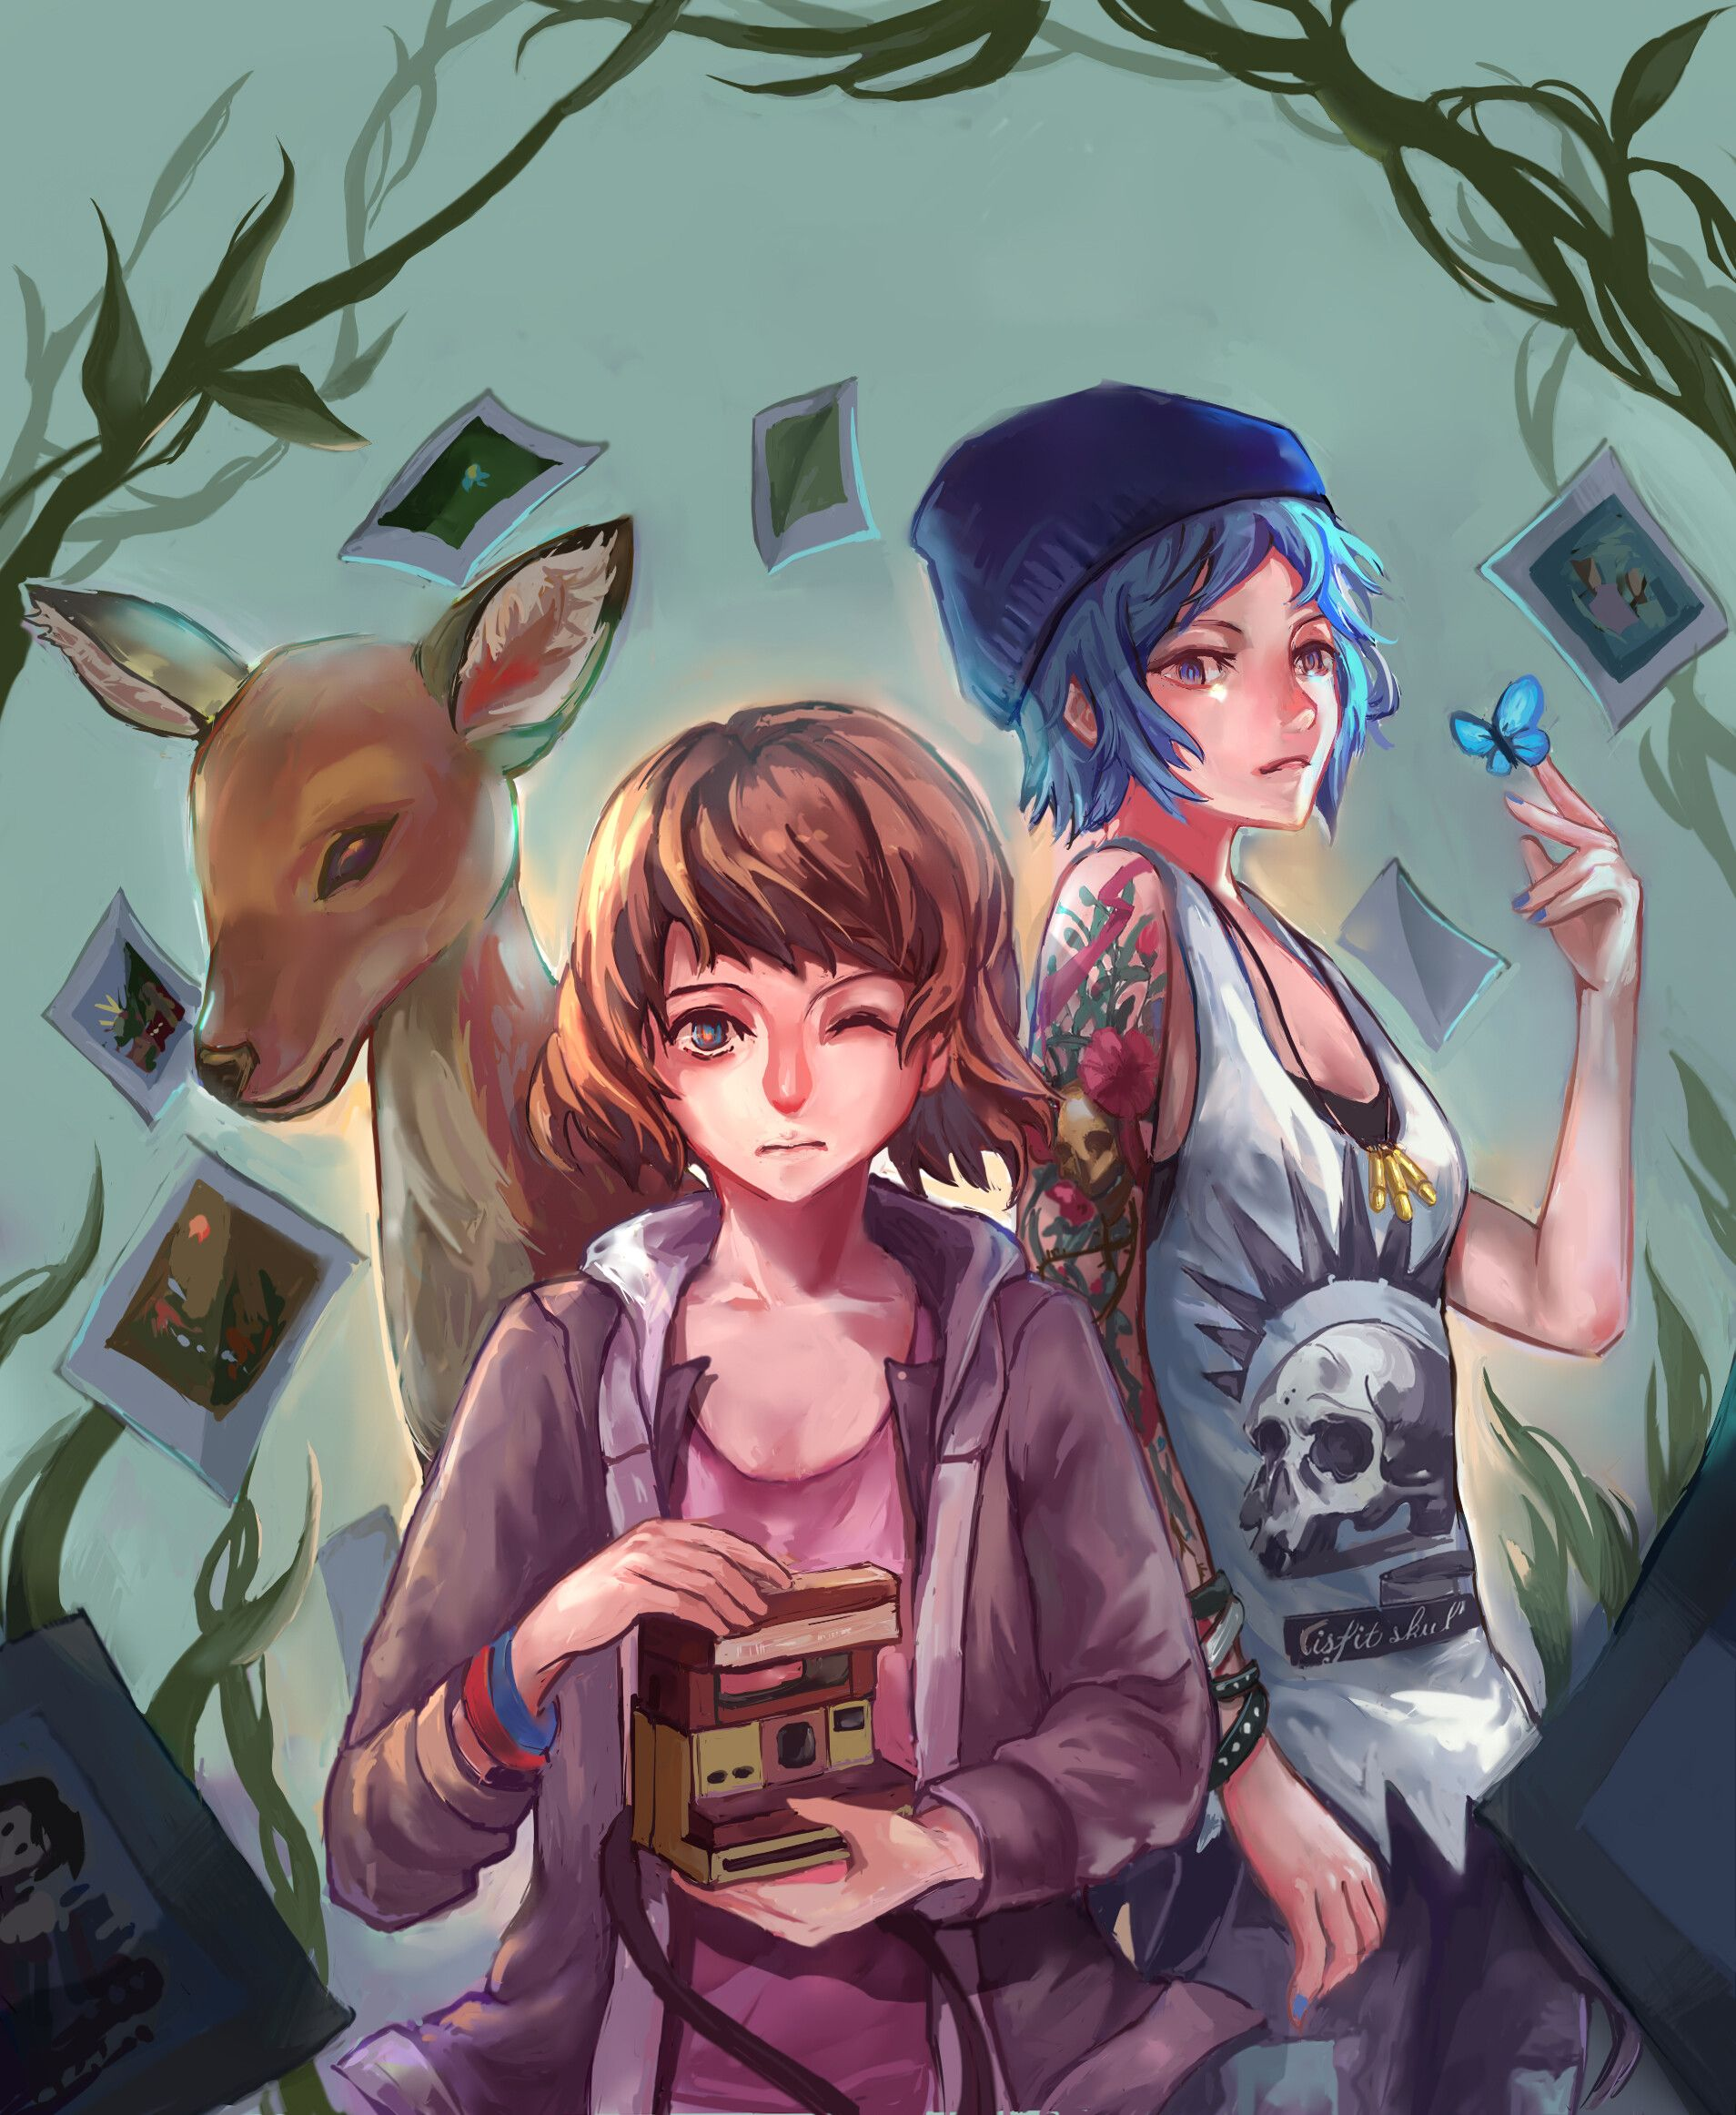 [2016]Fan art of a game LIF (life is strange), Peichin Chen